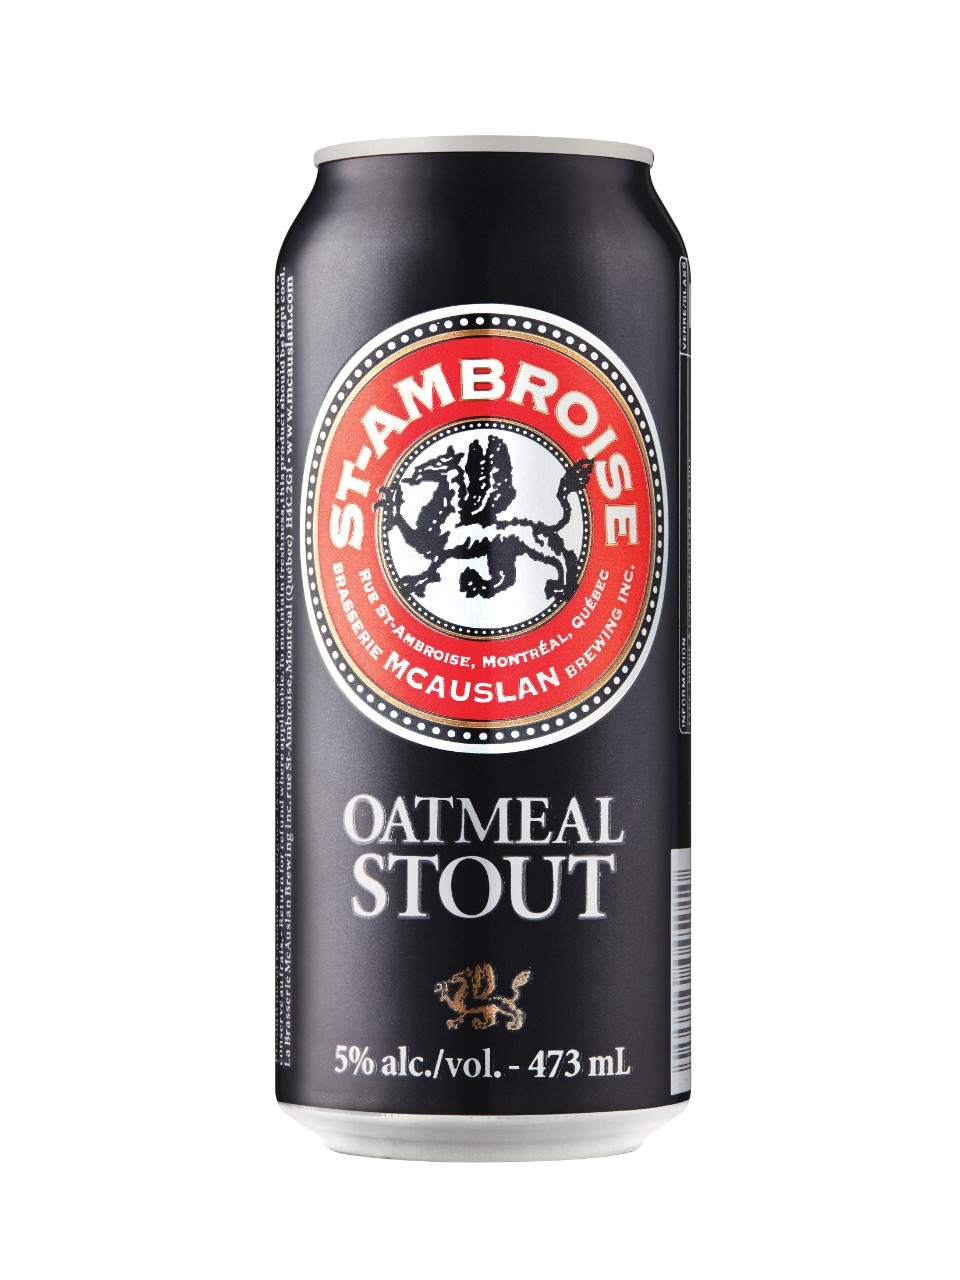 Image for St-Ambroise Oatmeal Stout from LCBO